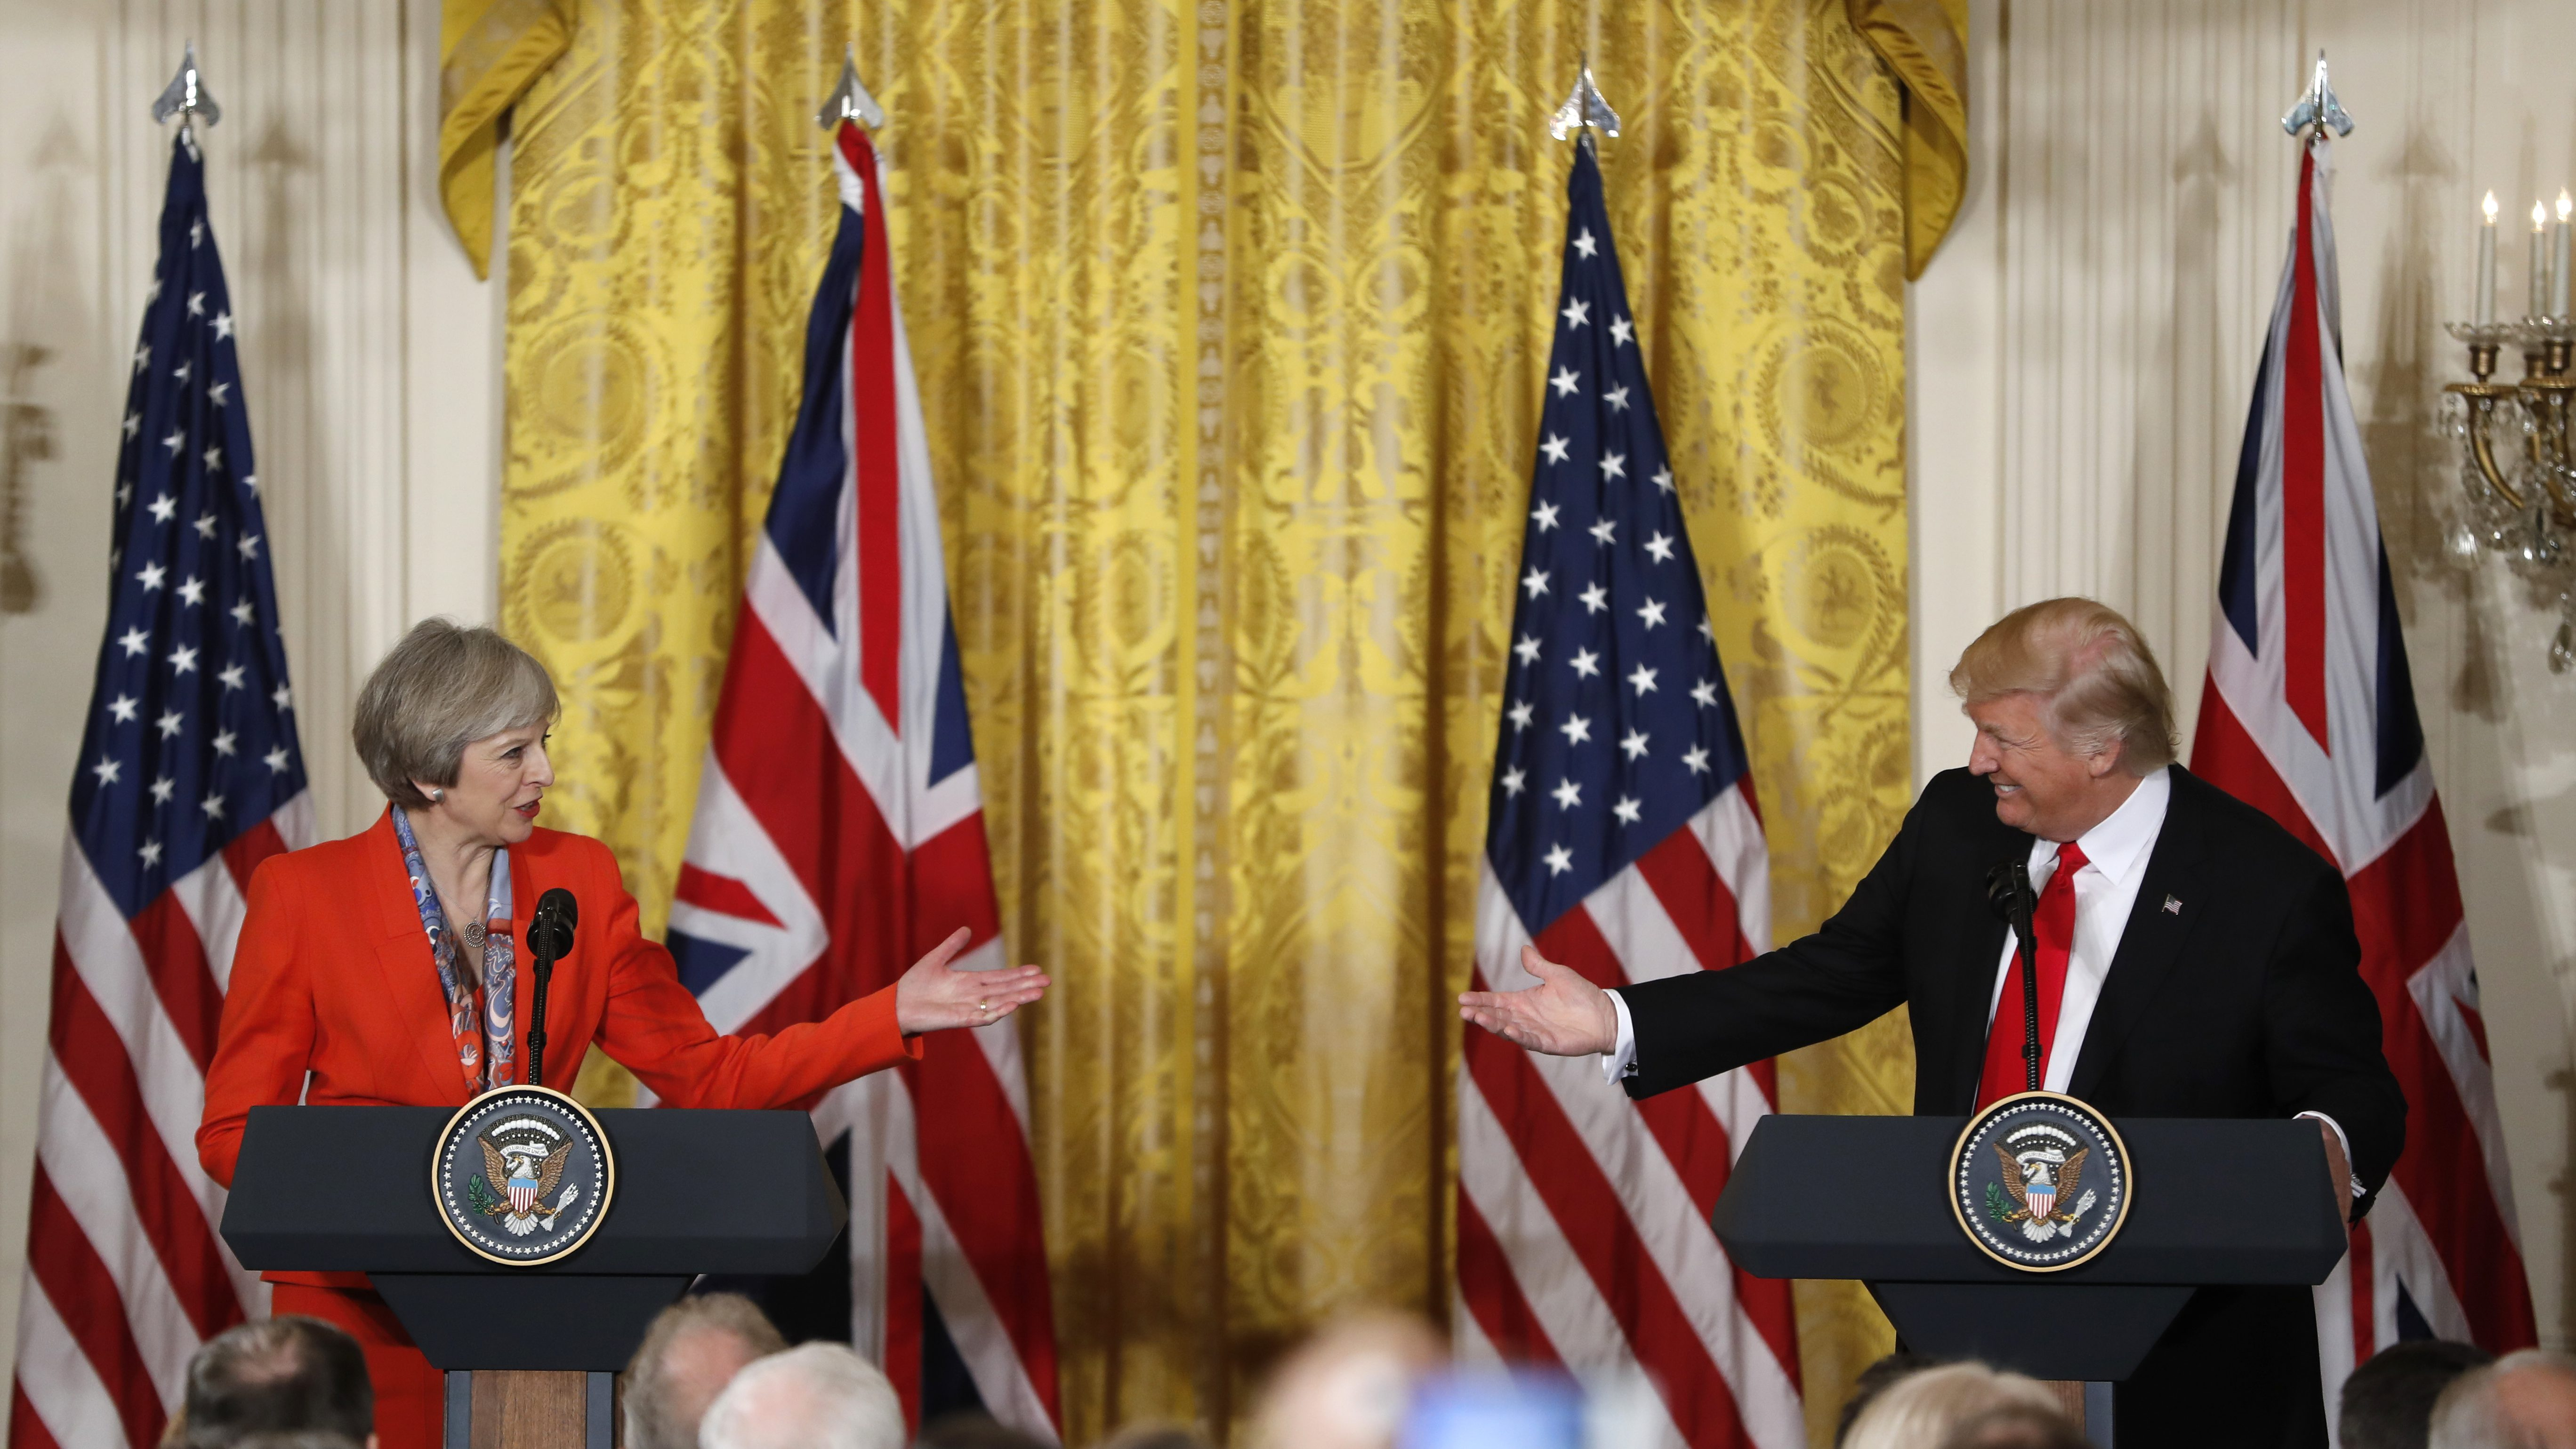 President Donald Trump and British Prime Minister Theresa May participate in a news conference in the East Room of the White House in Washington. (AP Photo/Pablo Martinez Monsivais)